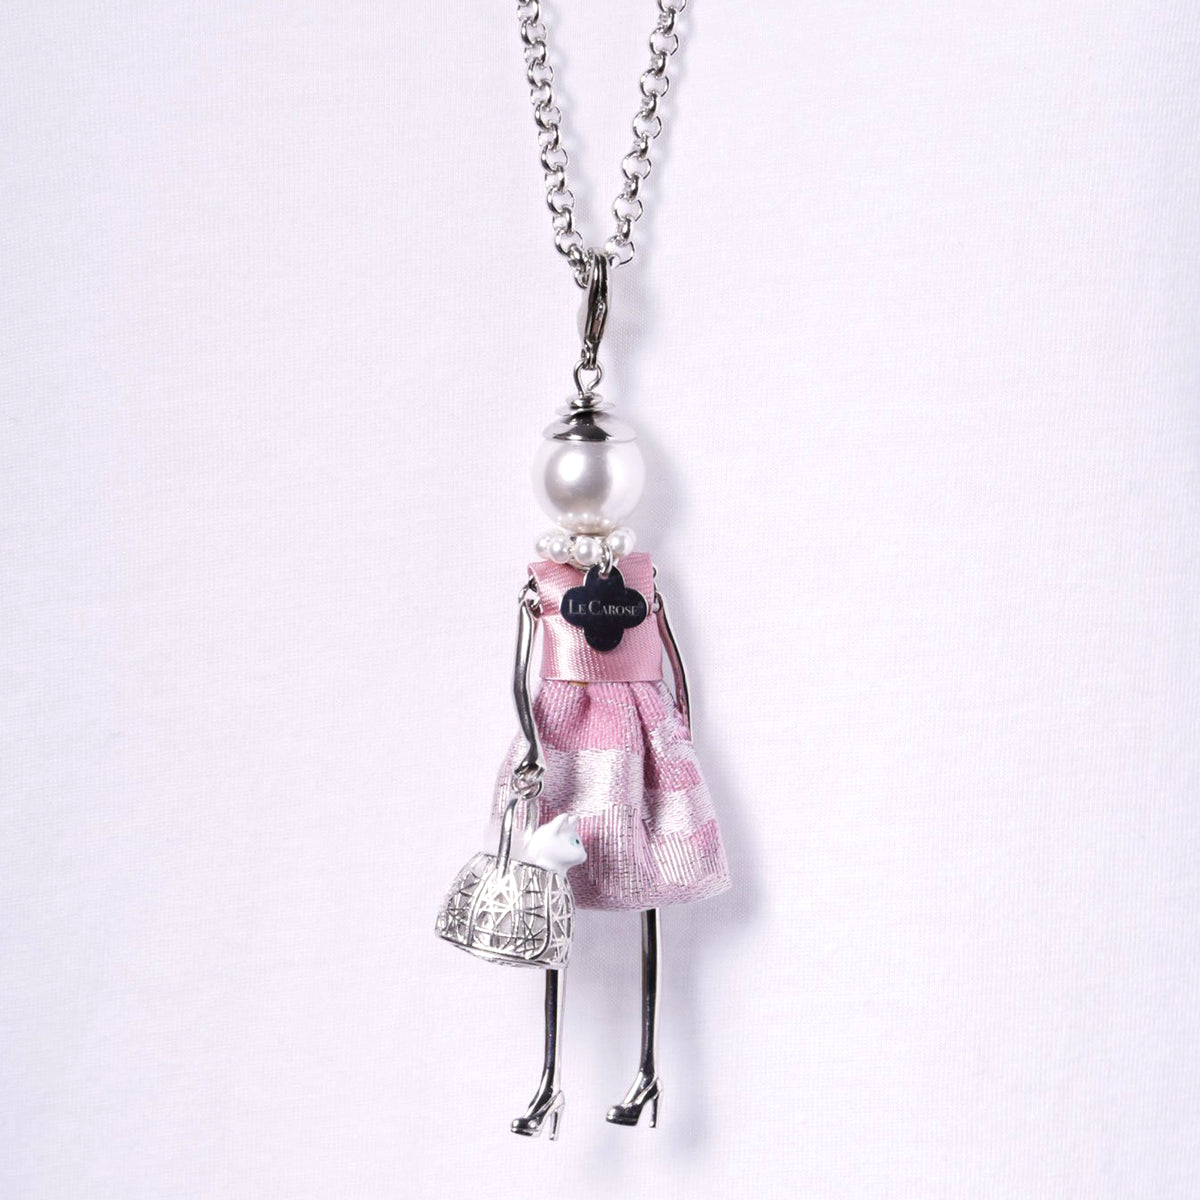 LE CAROSE NECKLACE, CAT